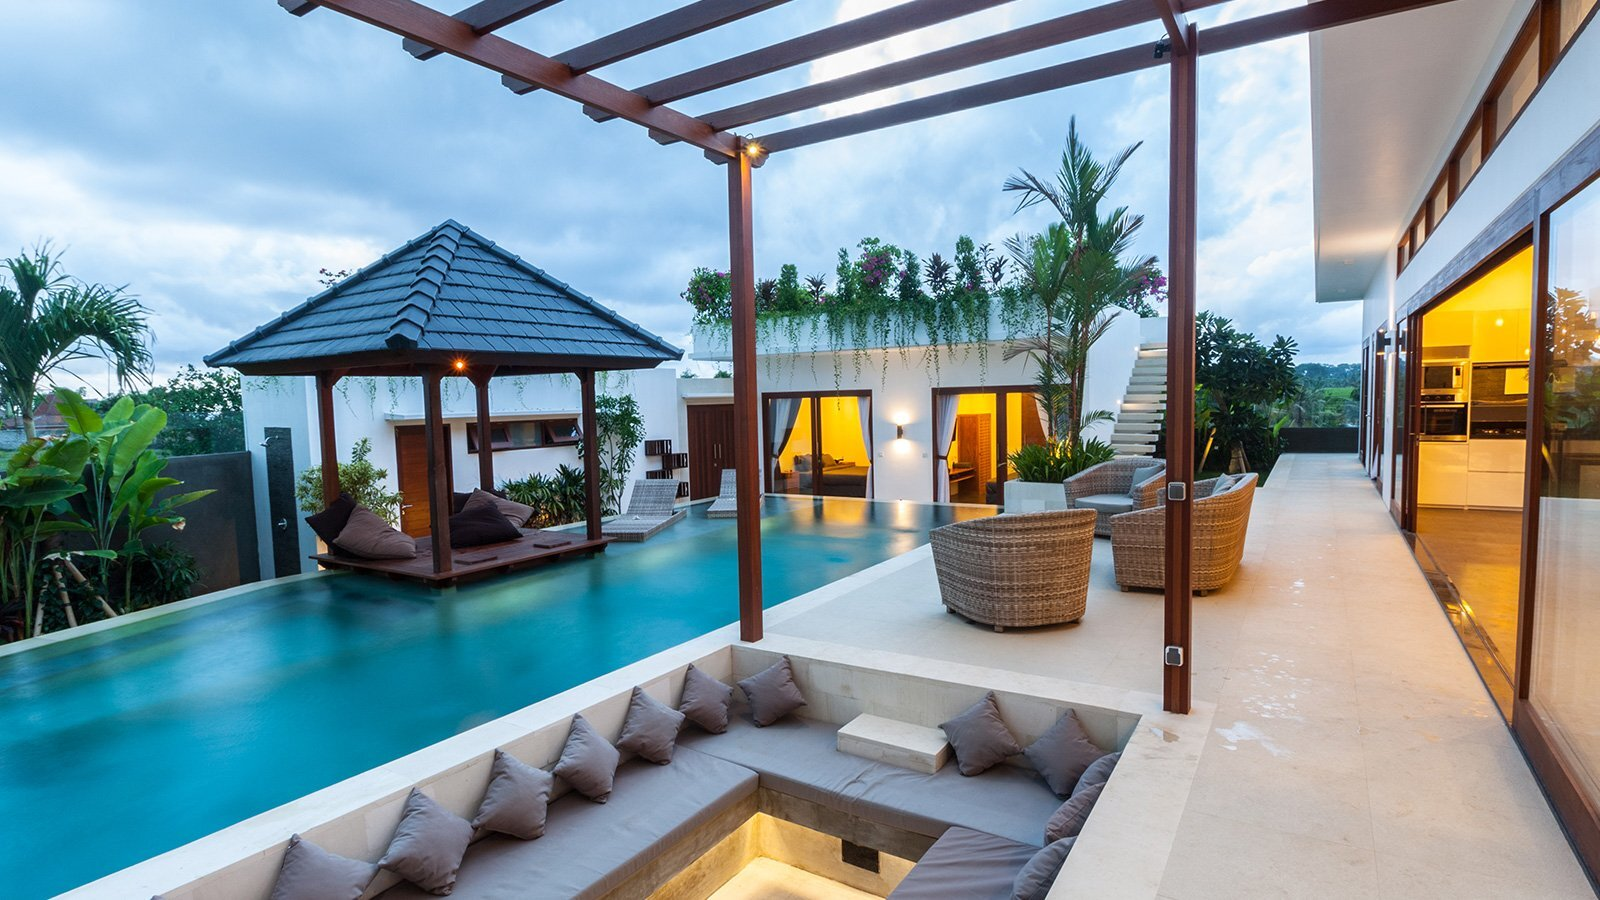 The outside patio of a luxury resort featuring a pool, pergola and outdoor seating